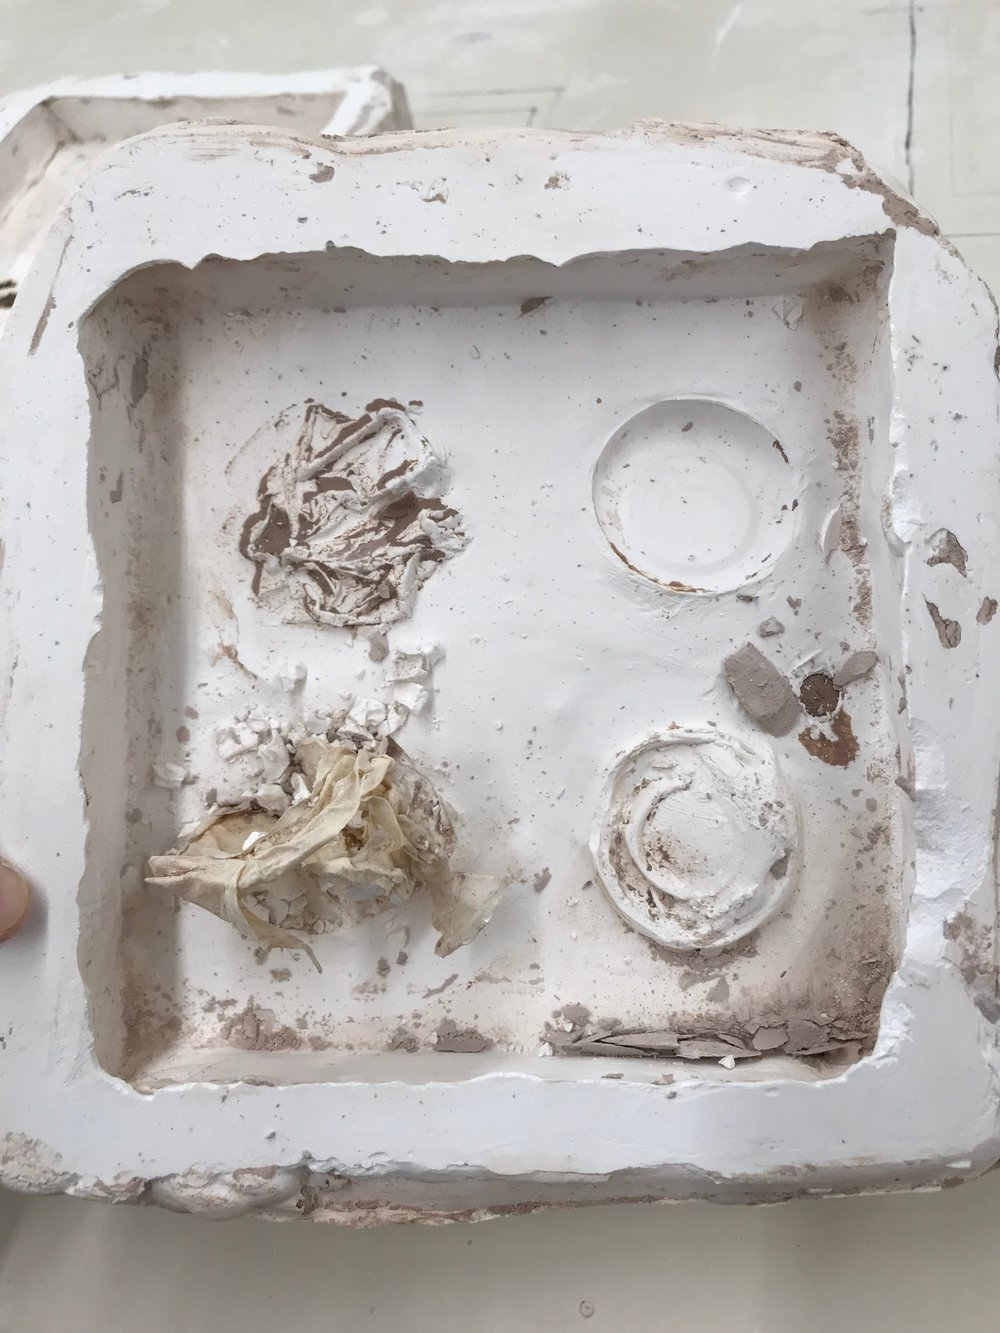 Tile mold with issues .